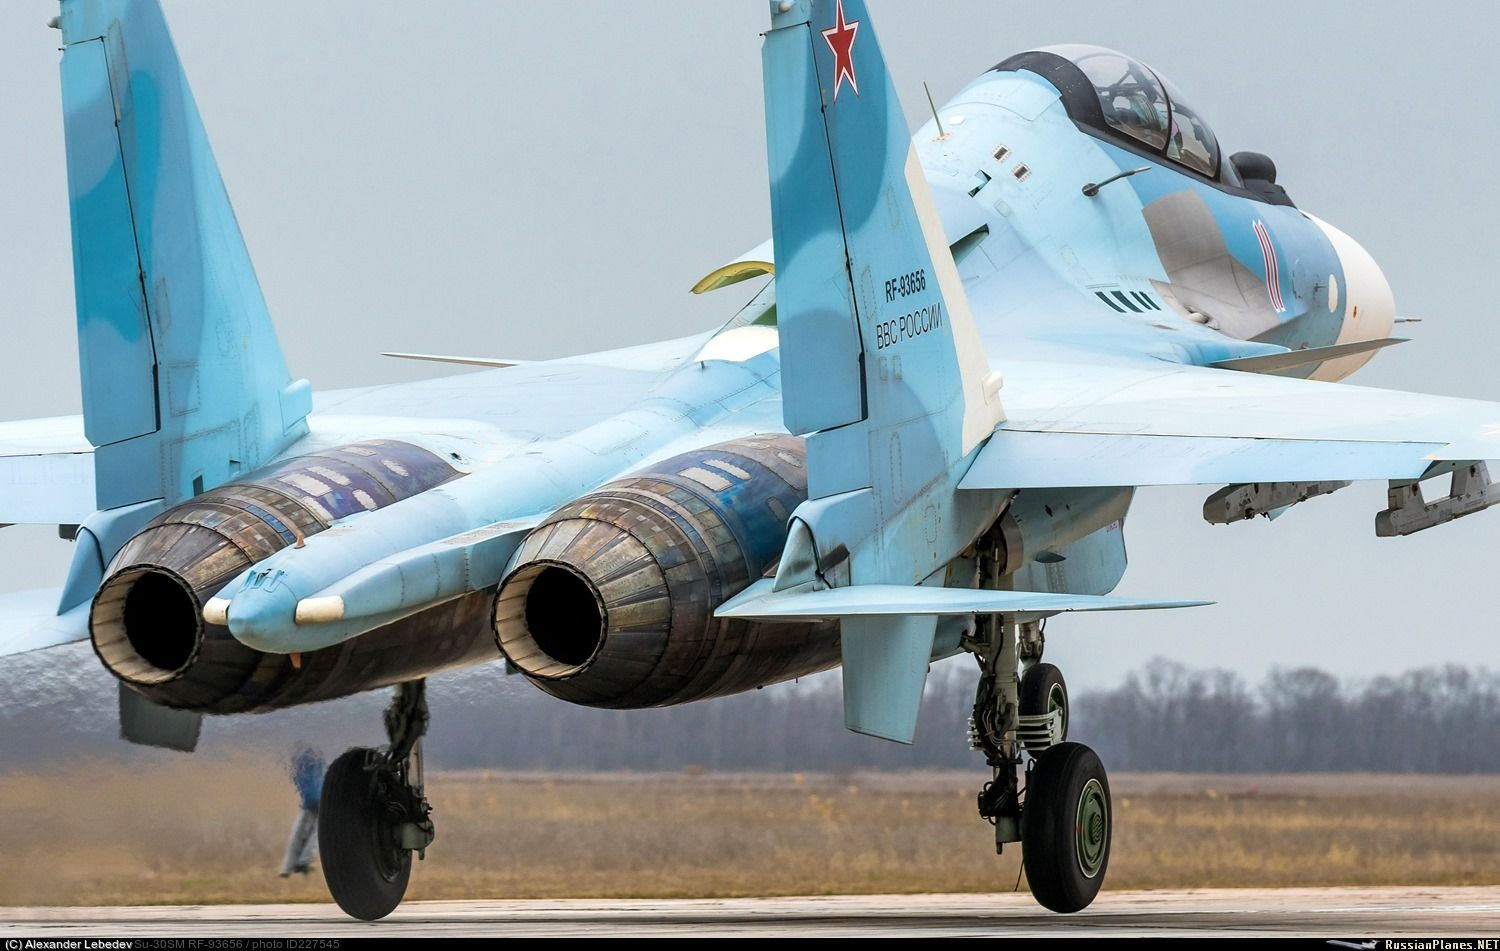 Military Aircraft — The Su30SM touching down the runway